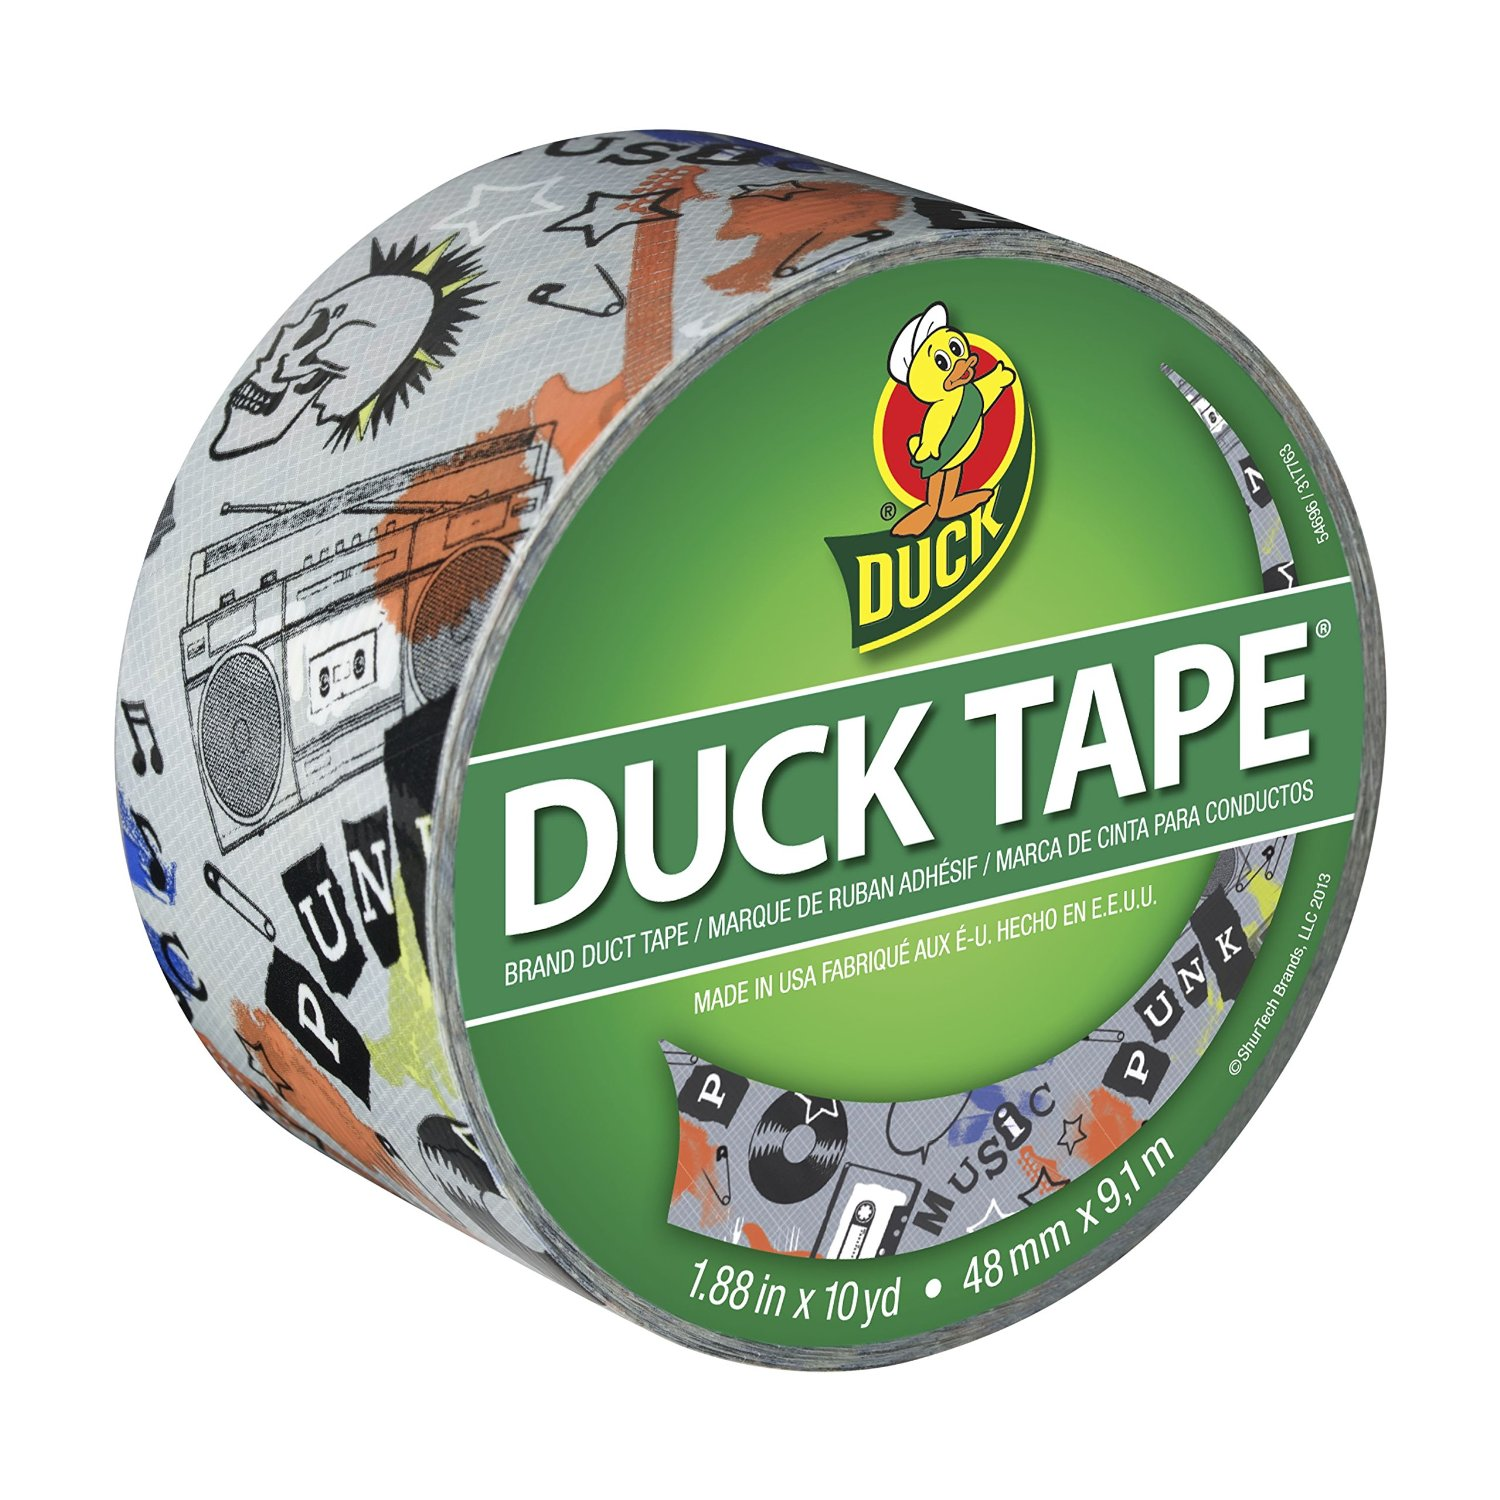 Duck Brand 282497 Printed Duct Tape, Punk Music, 1.88 Inches x 10 Yards, Single Roll